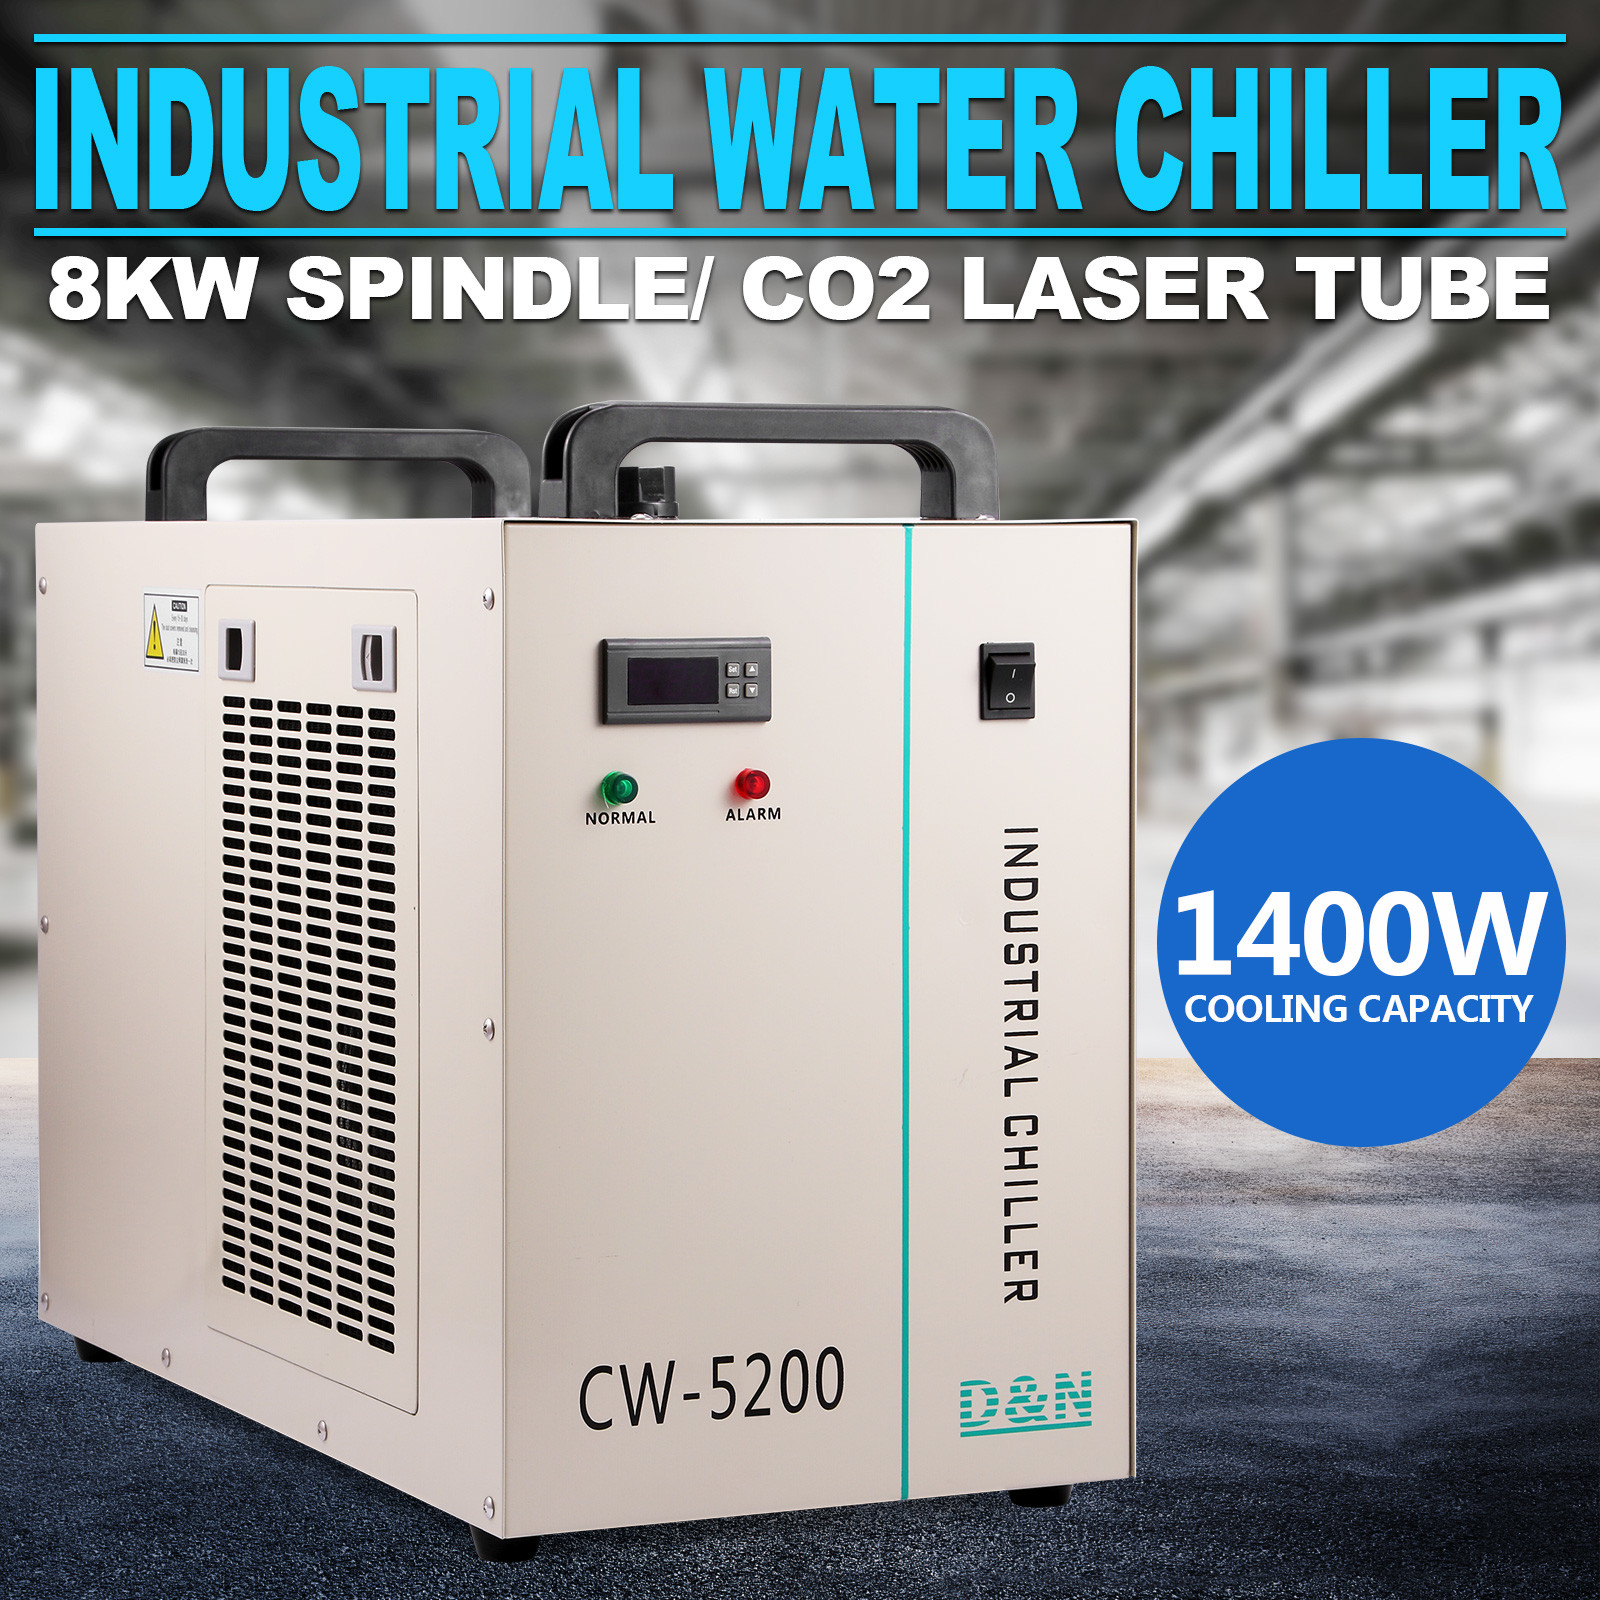 CW 5200DG INDUSTRIAL WATER CHILLER 6L TANK THERMOLYSIS TYPE LASER  #06A3C5